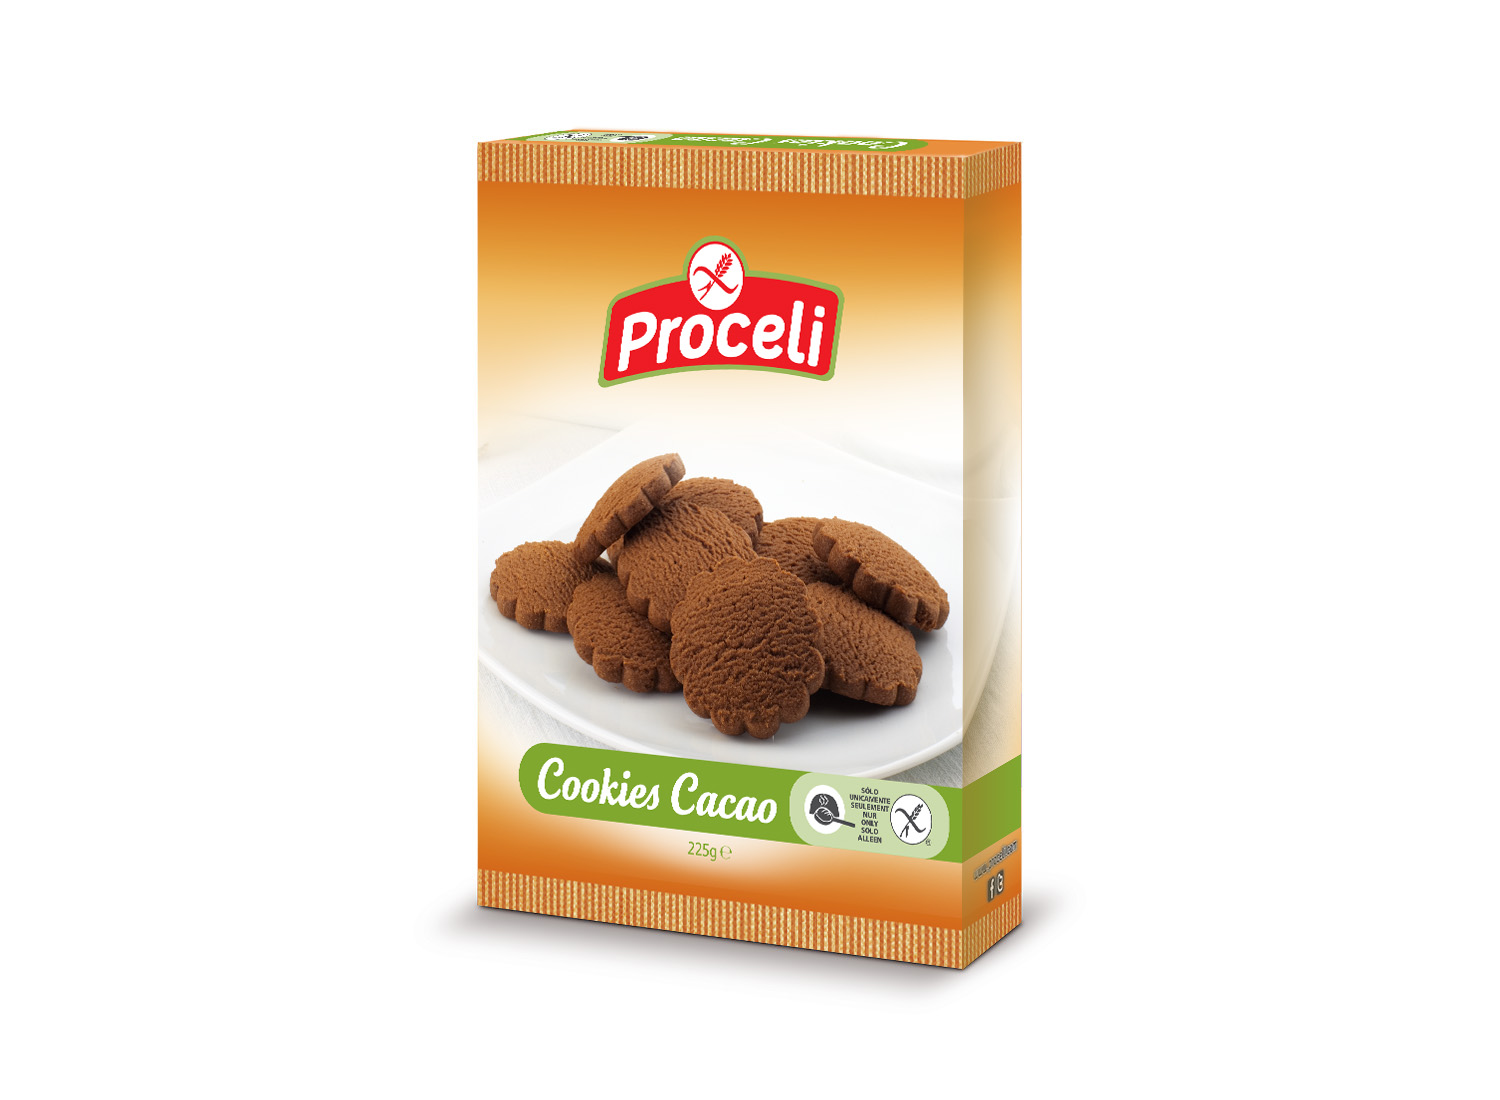 cookies-cacao gluten-free from Proceli -pack